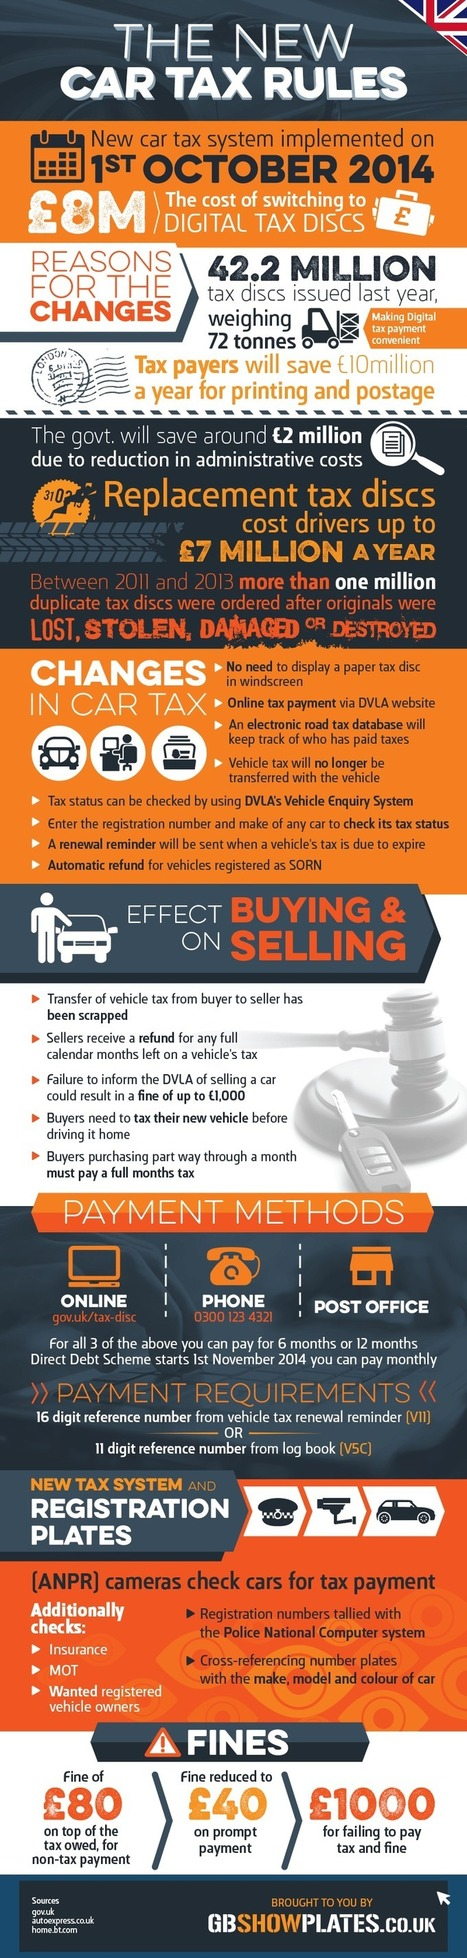 How Tax Payers will save $10 Million with New Car Tax Rules? | All Infographics | Scoop.it